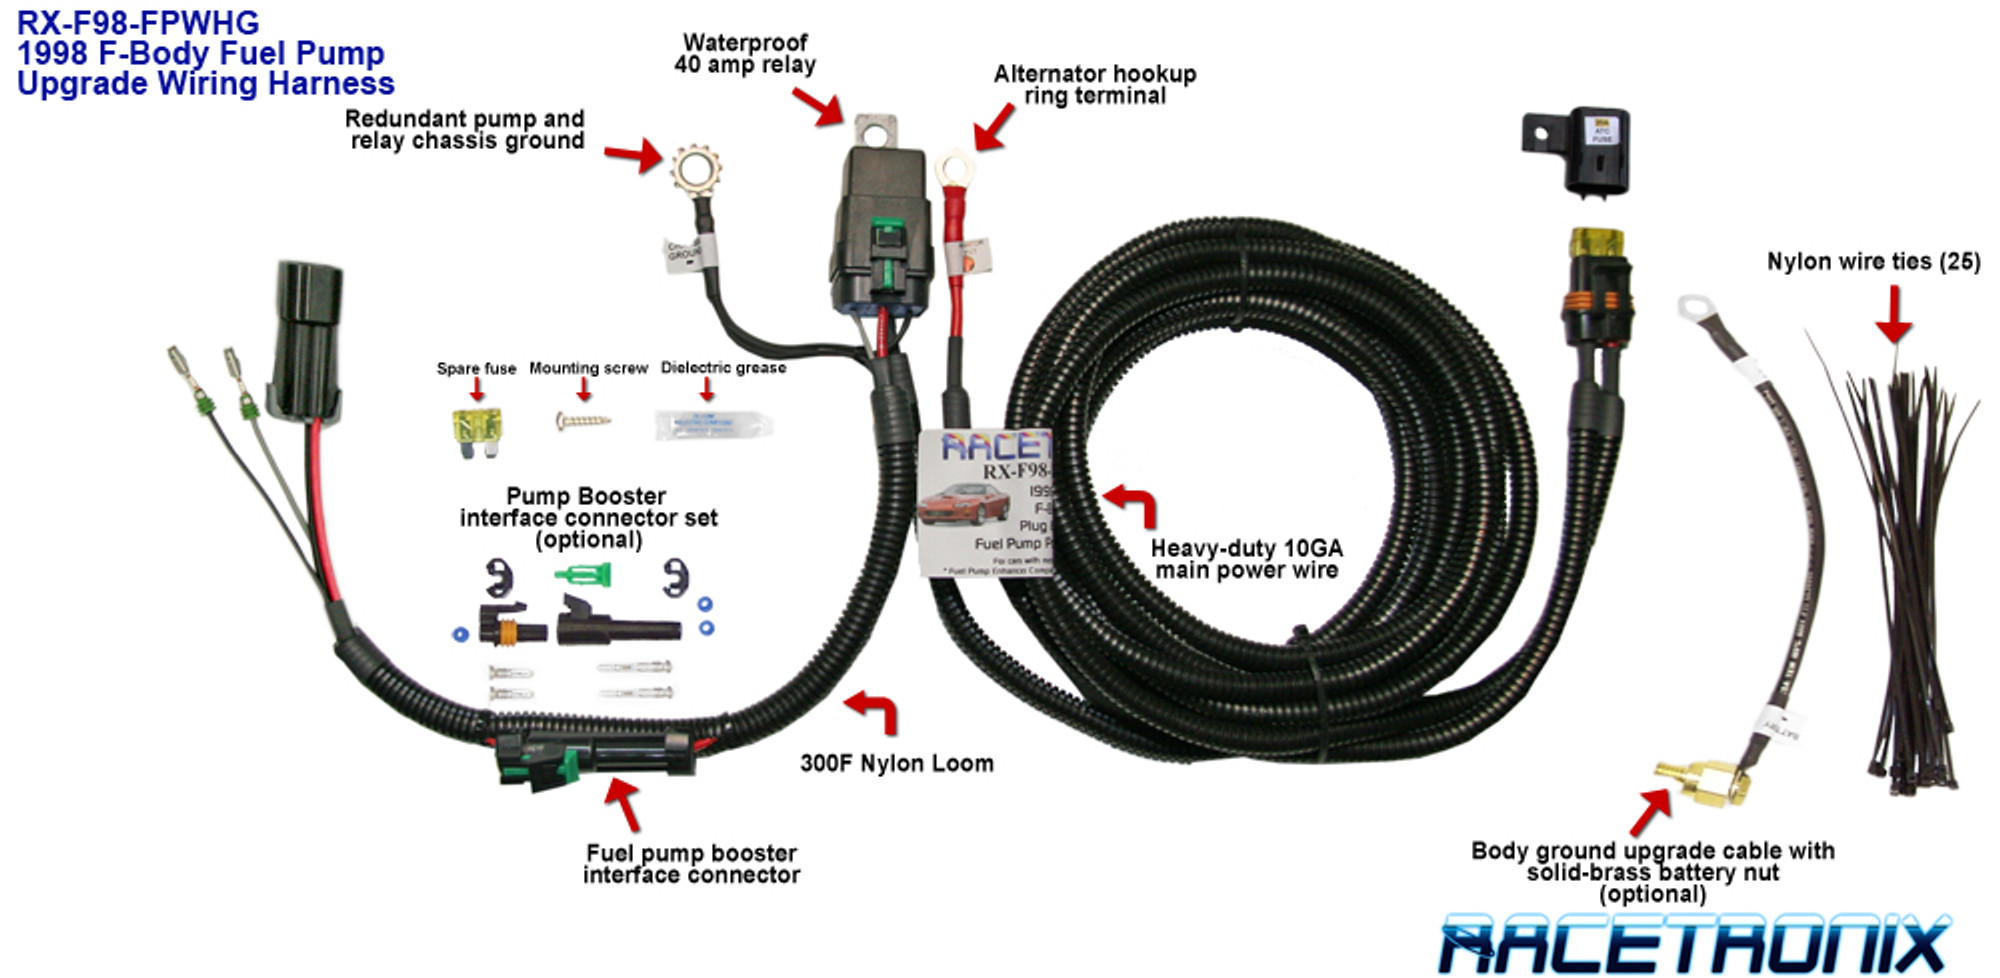 racetronix fuel pump kit metal tank 98 fbody tick performance inc racetronix fuel pump wiring harness install [ 2000 x 978 Pixel ]